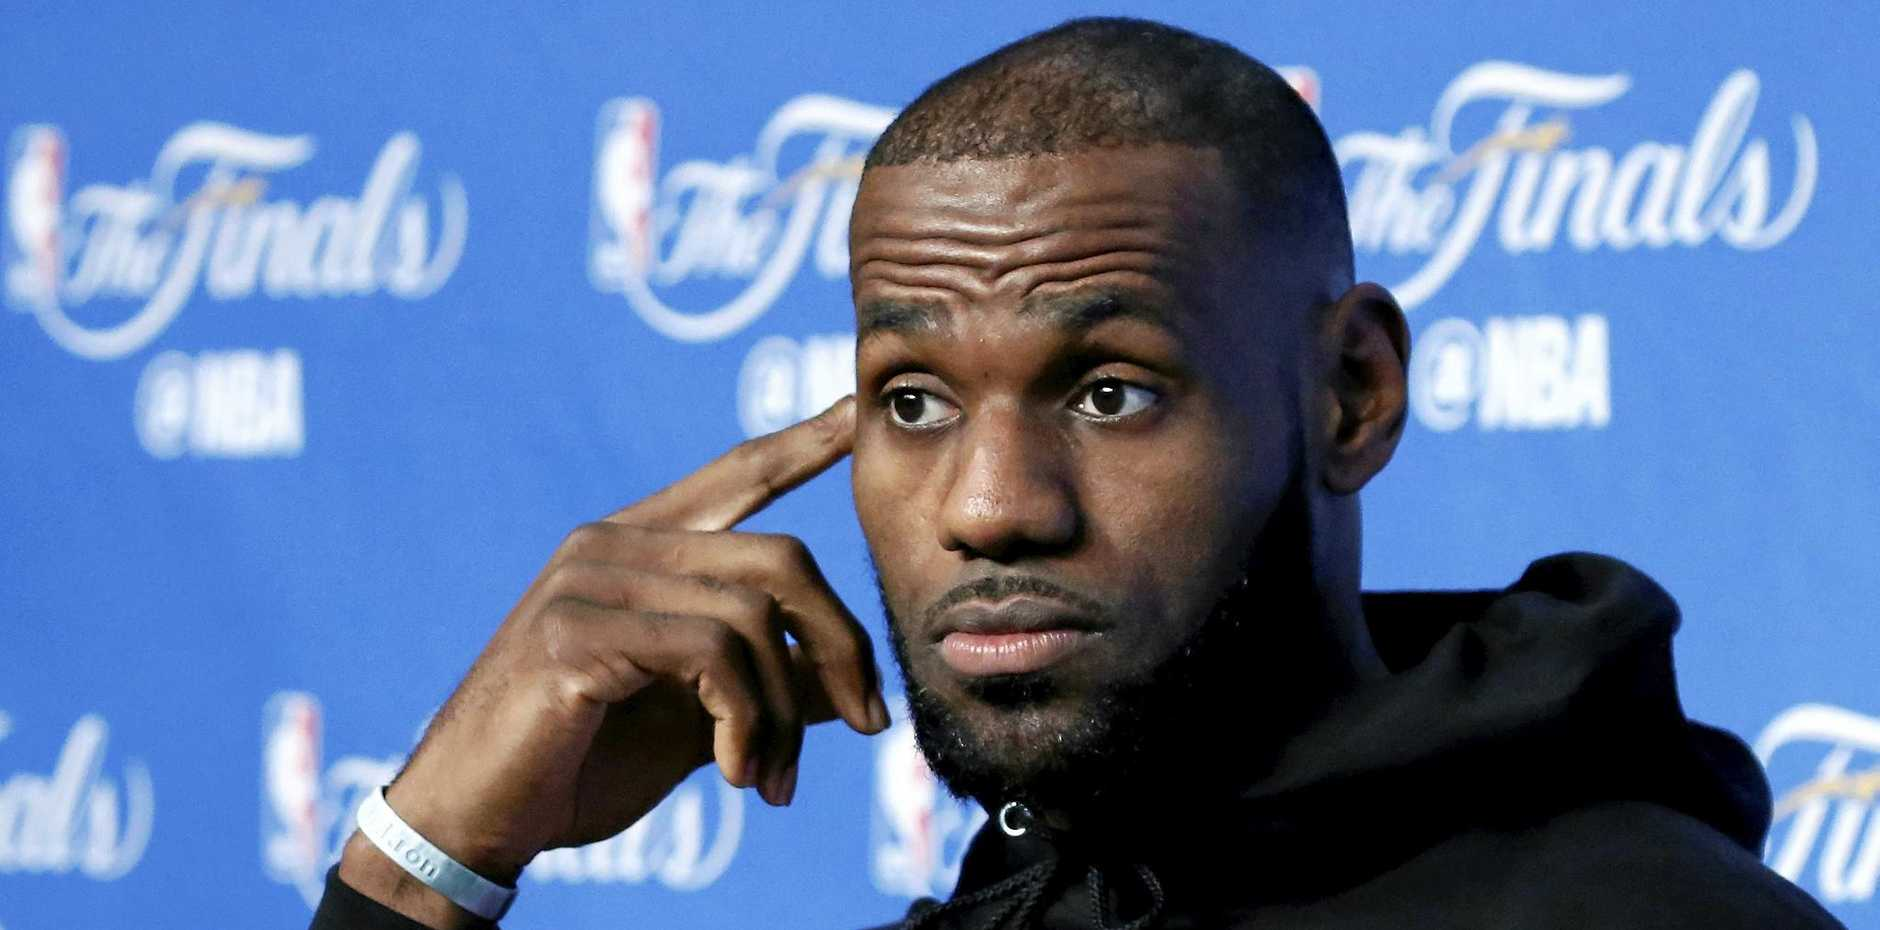 Cleveland Cavaliers player LeBron James talks to the media.